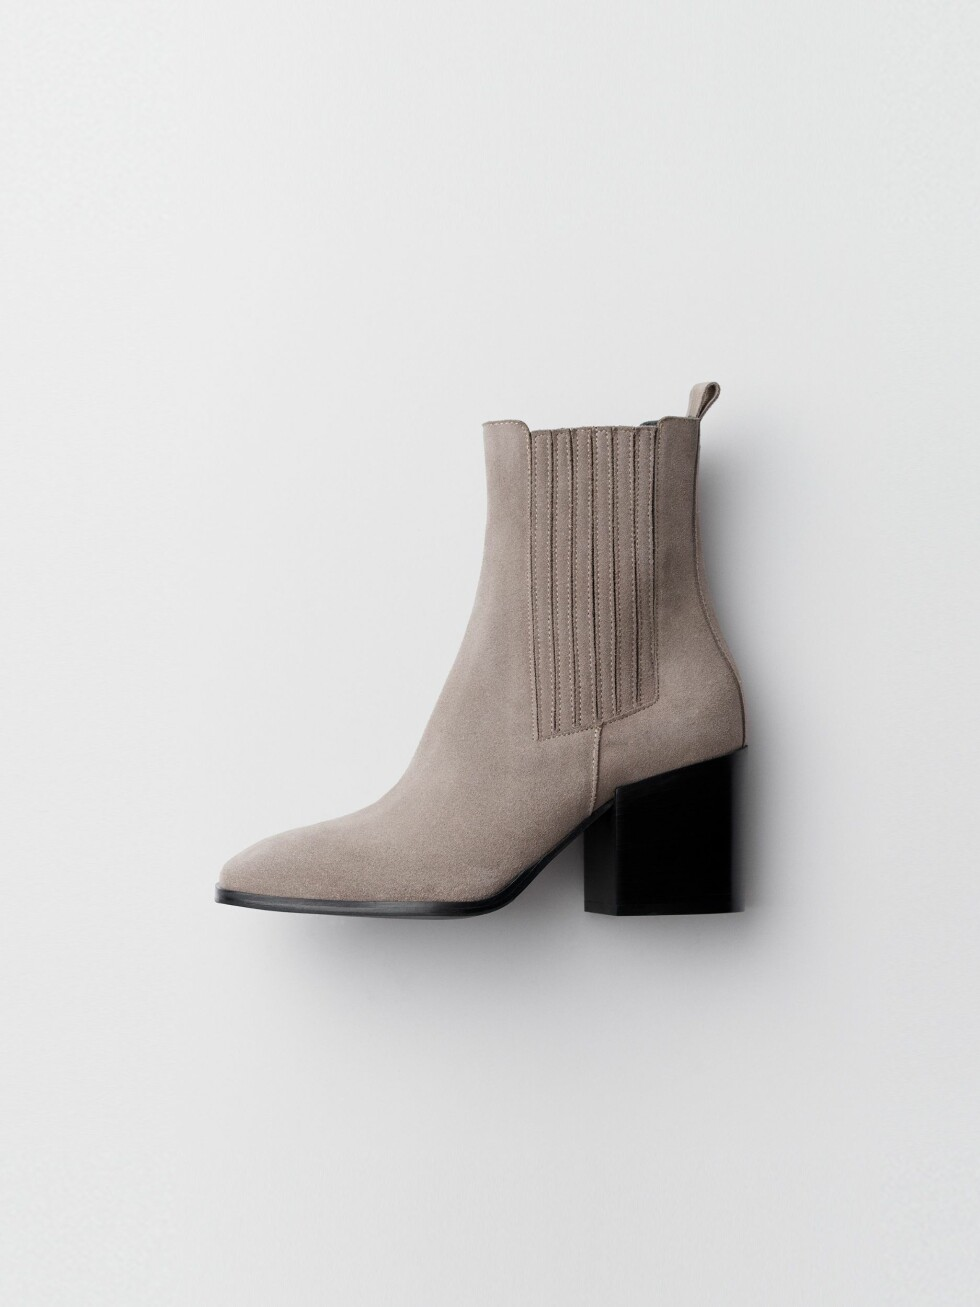 Aeyde |2600,-| https://www.aeyde.com/products/liam-taupe-suede